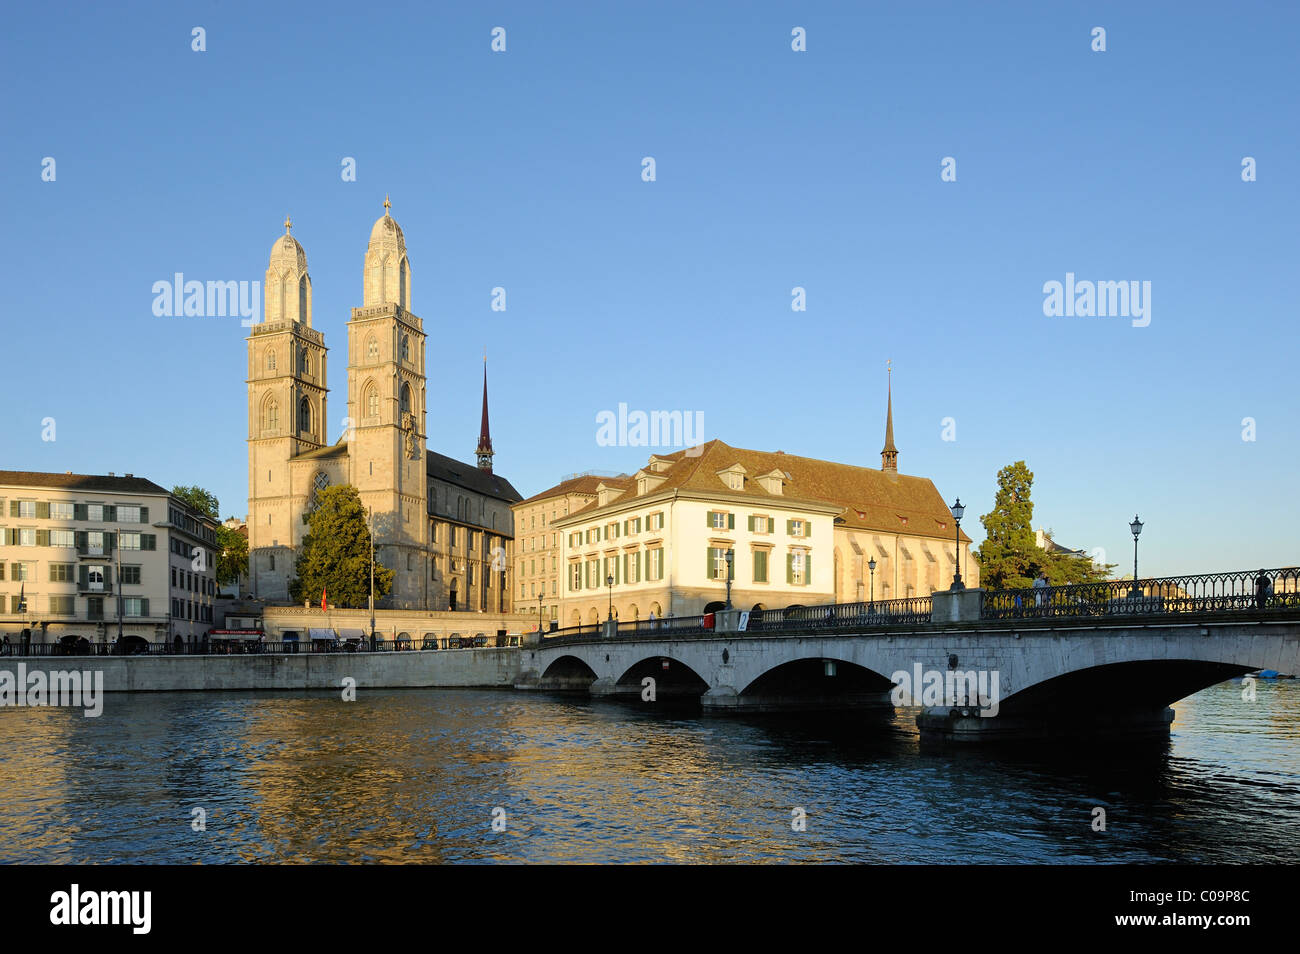 Limmat river with the Grossmuenster minster and the Muensterbruecke bridge, old town, Zurich, Switzerland, Europe - Stock Image